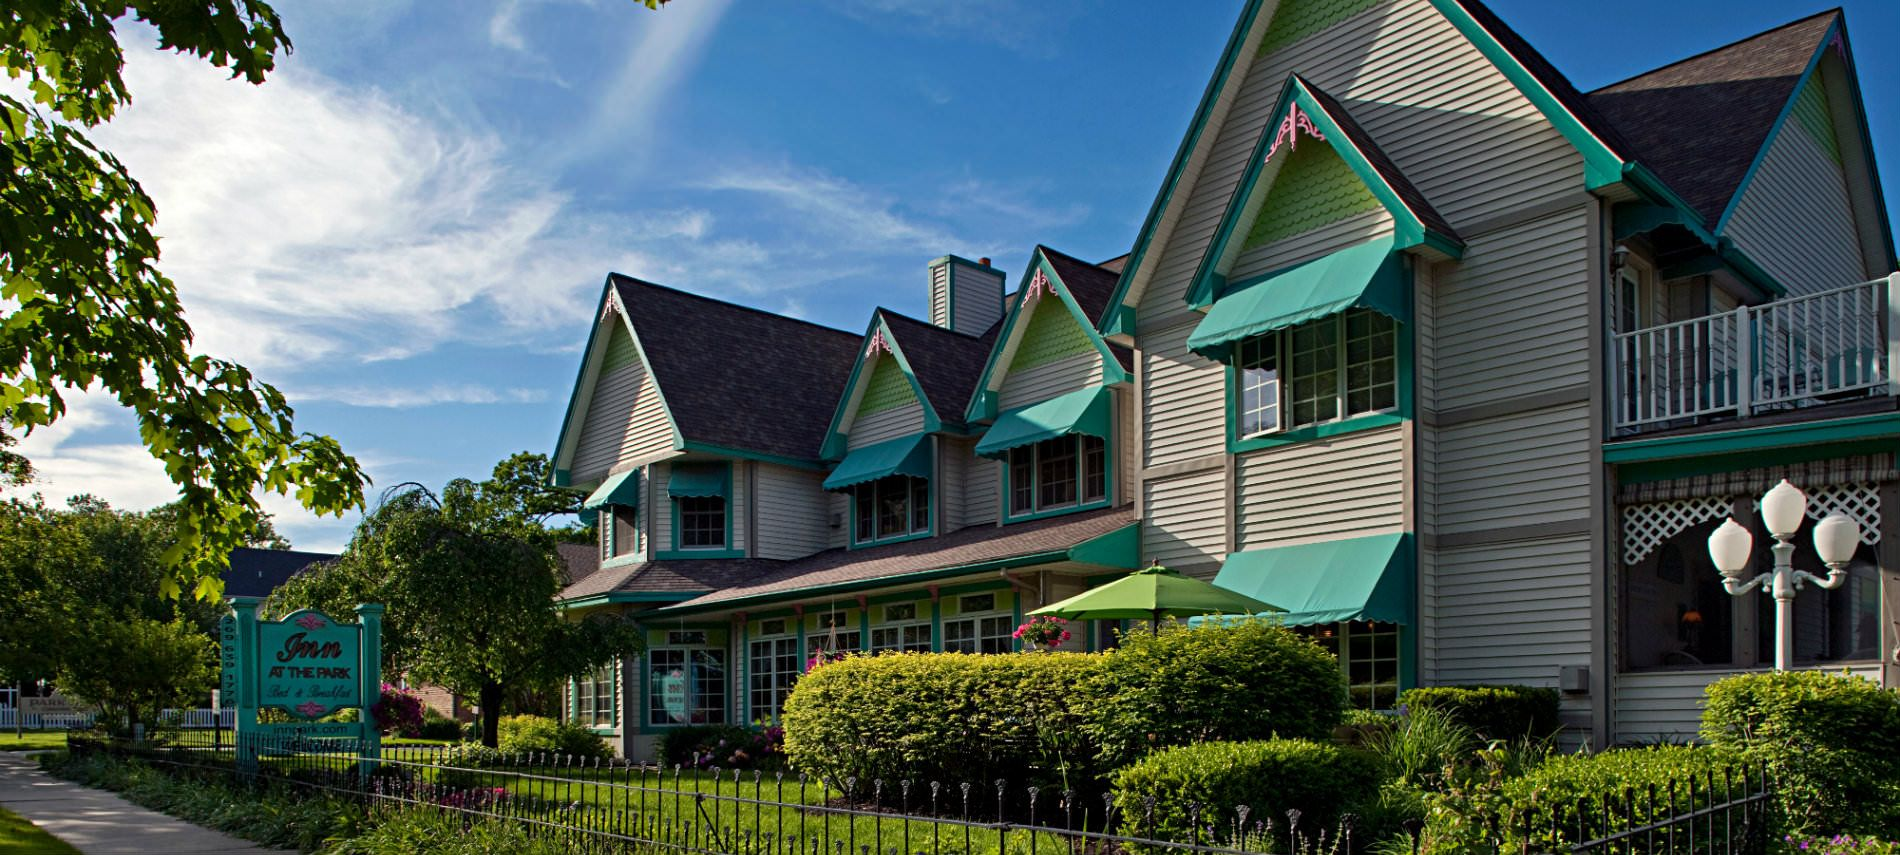 Bed and breakfast, Stay the night, South haven